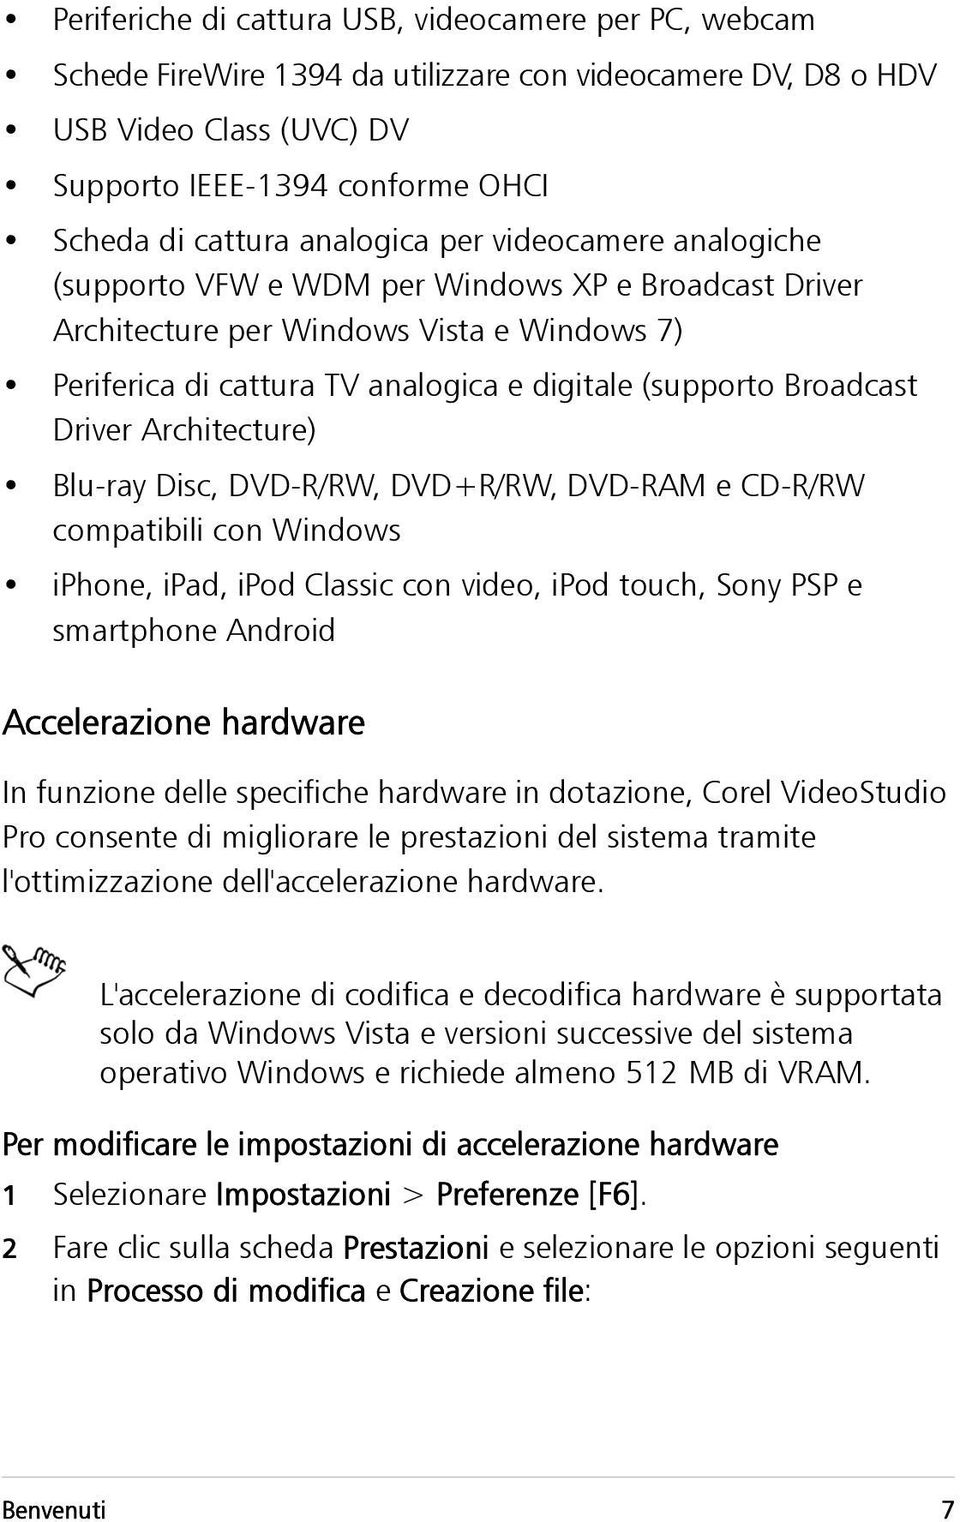 Broadcast Driver Architecture) Blu-ray Disc, DVD-R/RW, DVD+R/RW, DVD-RAM e CD-R/RW compatibili con Windows iphone, ipad, ipod Classic con video, ipod touch, Sony PSP e smartphone Android